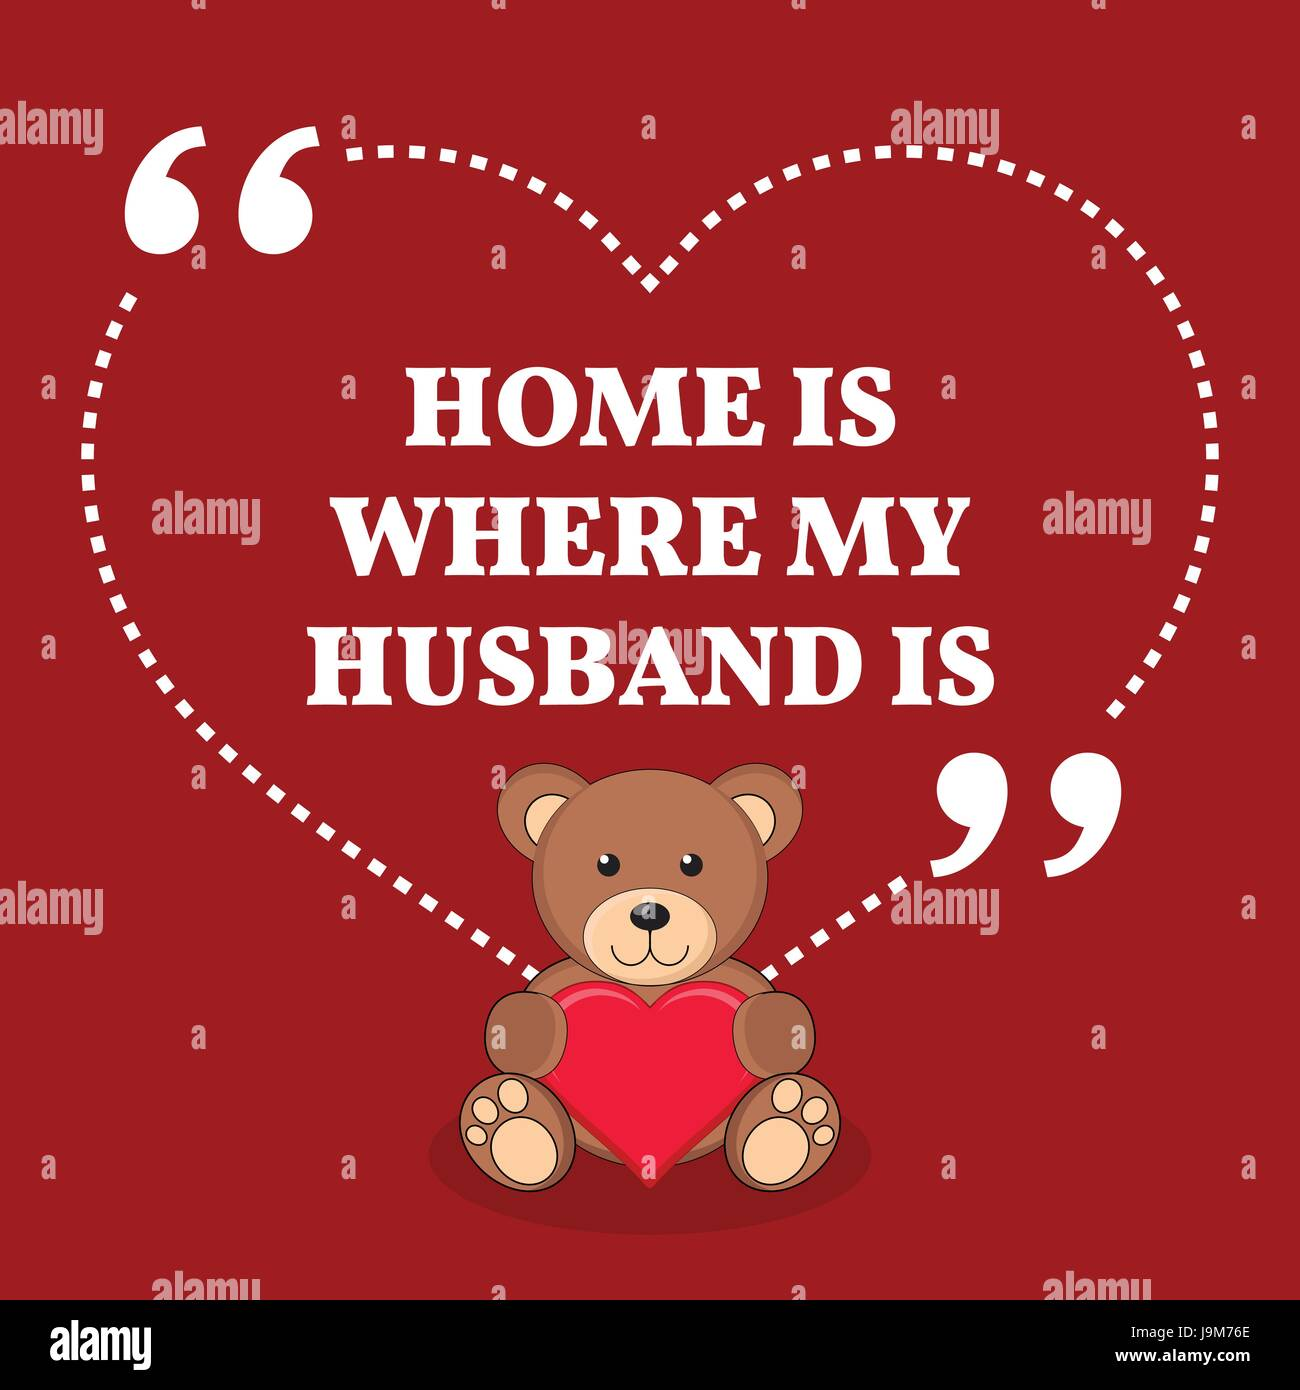 Inspirational love marriage quote. Home is where my husband is